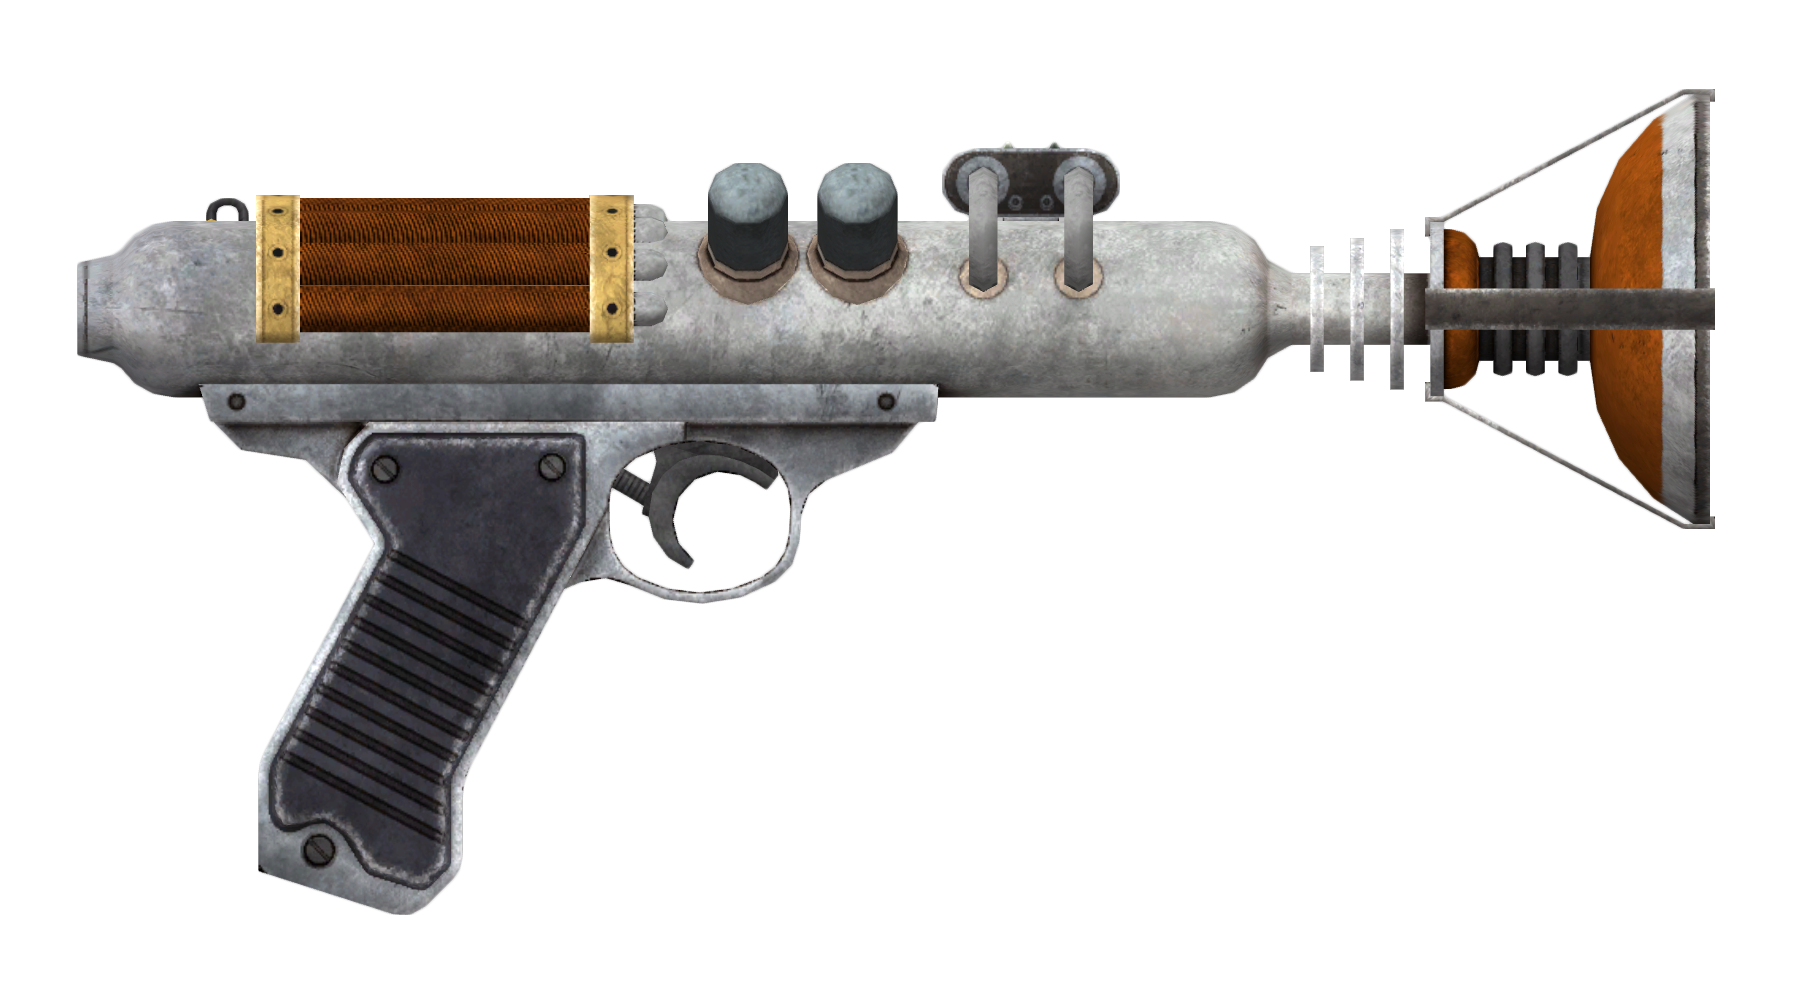 Pulse Gun Fallout New Vegas Fallout Wiki Fandom Powered By Wikia